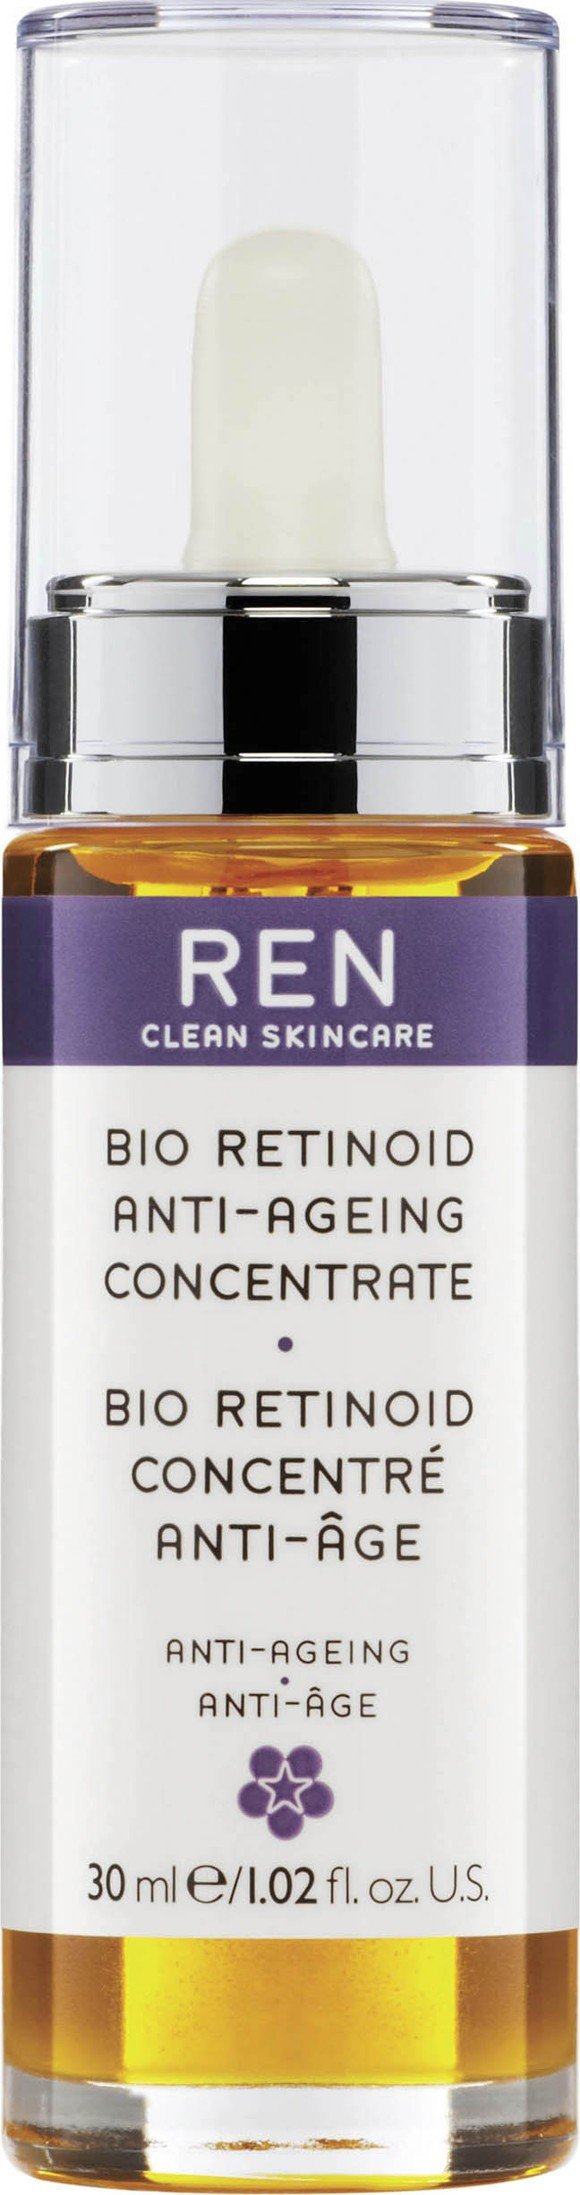 REN - Bio Retinoid Anti-Wrinkle Concentrate Oil 30 ml